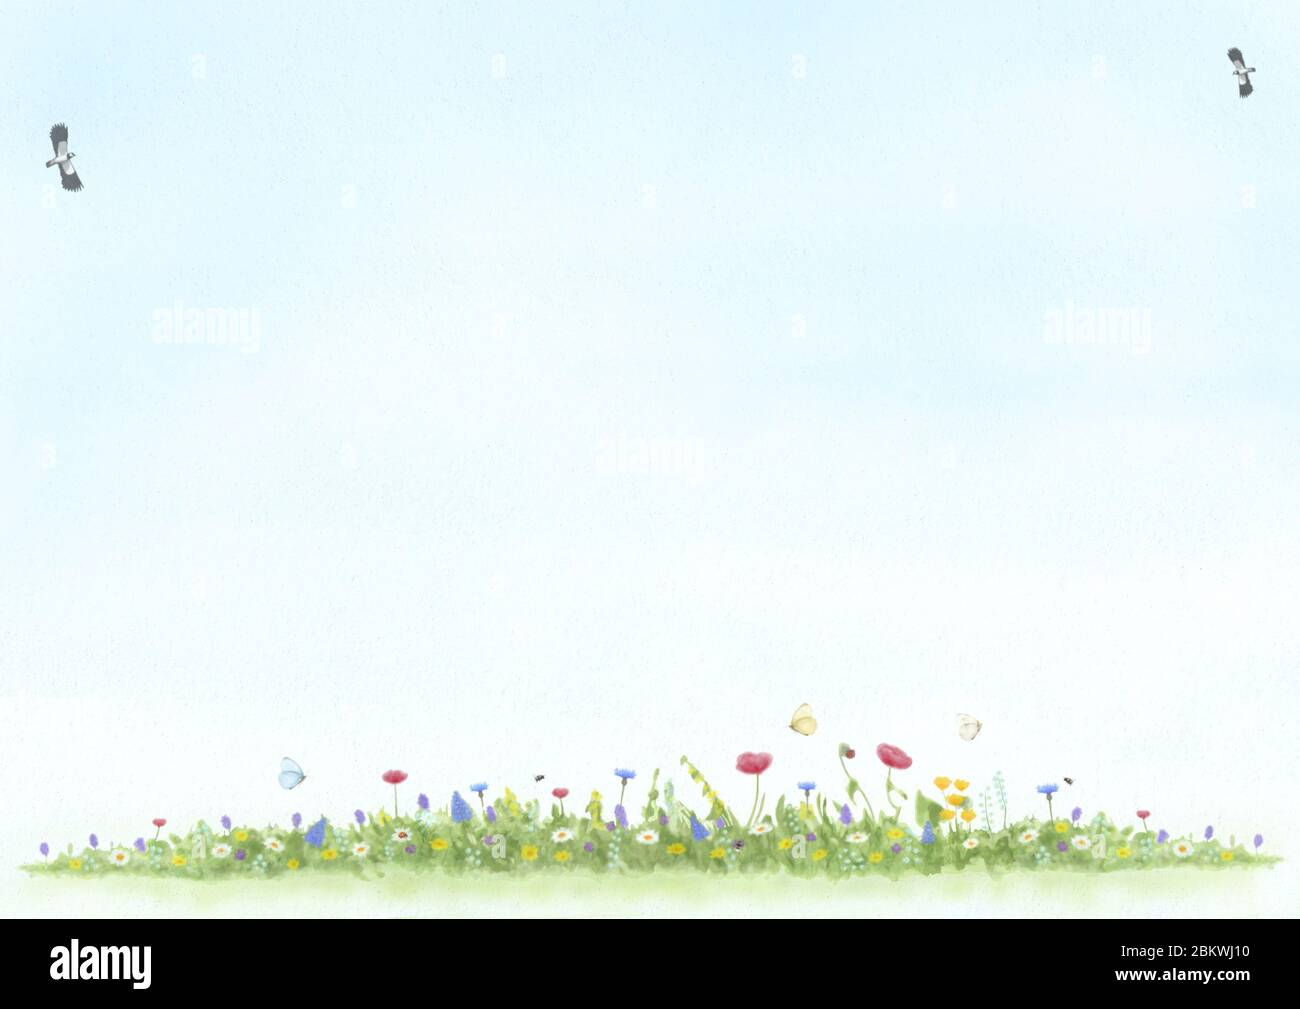 abstract illustration, hand drawn and painted view of meadow with wild flowers, birds and butterfly, mixed art on textured background Stock Photo